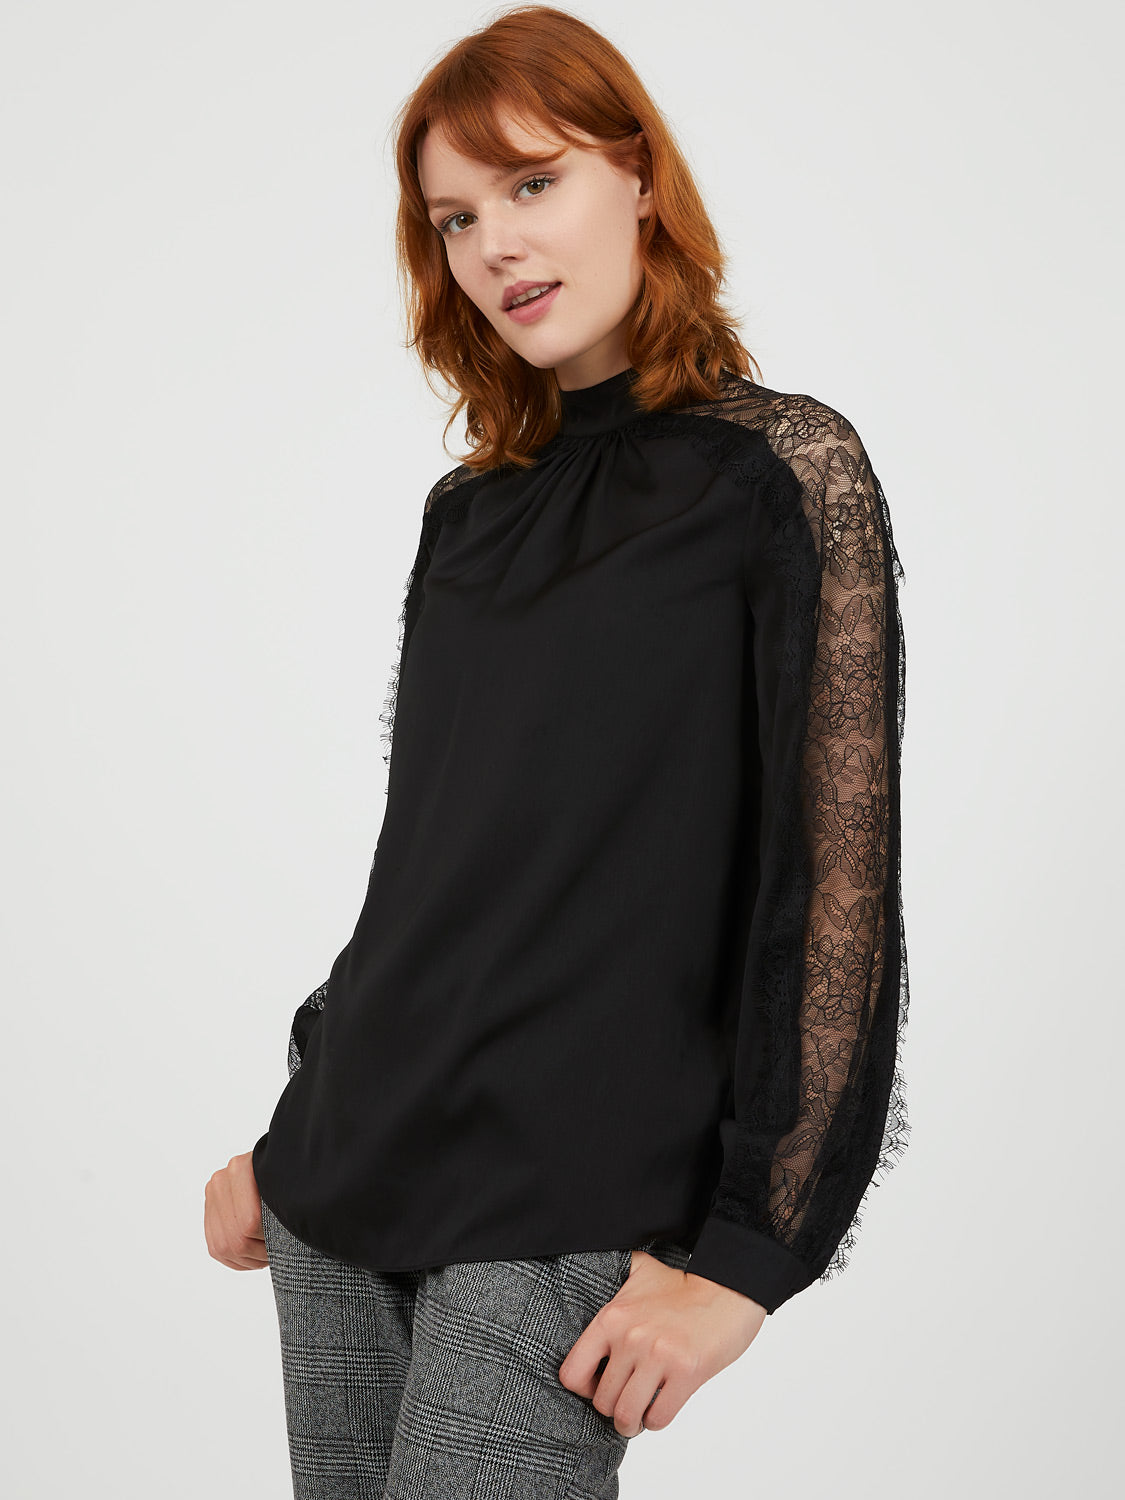 Satin Mock Neck Lace Sleeve Top